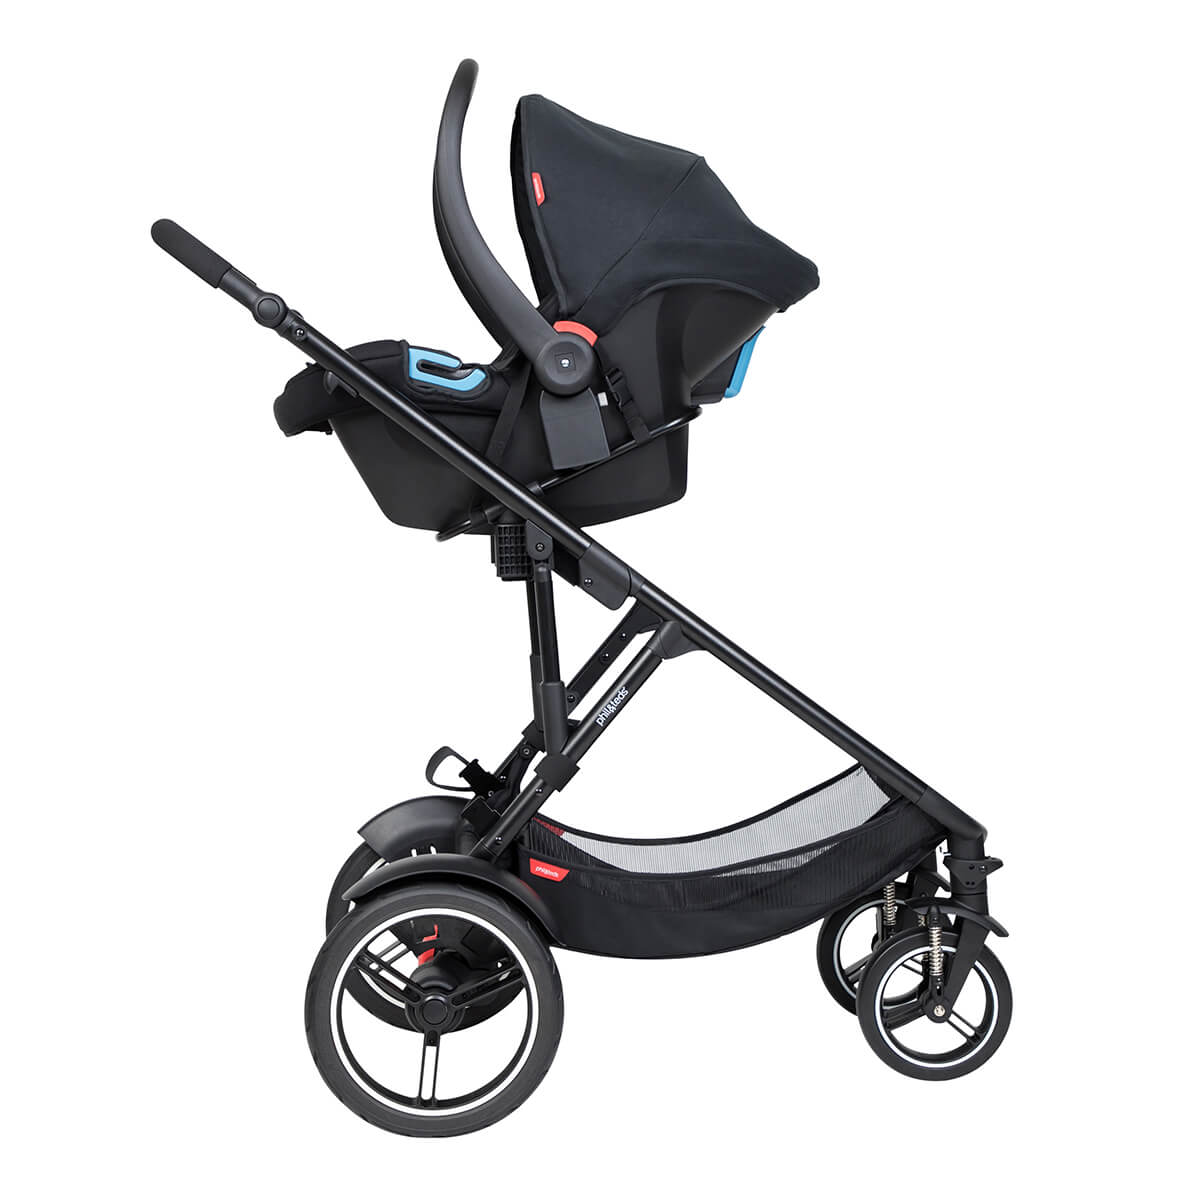 https://cdn.accentuate.io/4363393695797/19118870331445/philteds-voyager-buggy-with-travel-system-in-parent-facing-mode-v1626404047309.jpg?1200x1200